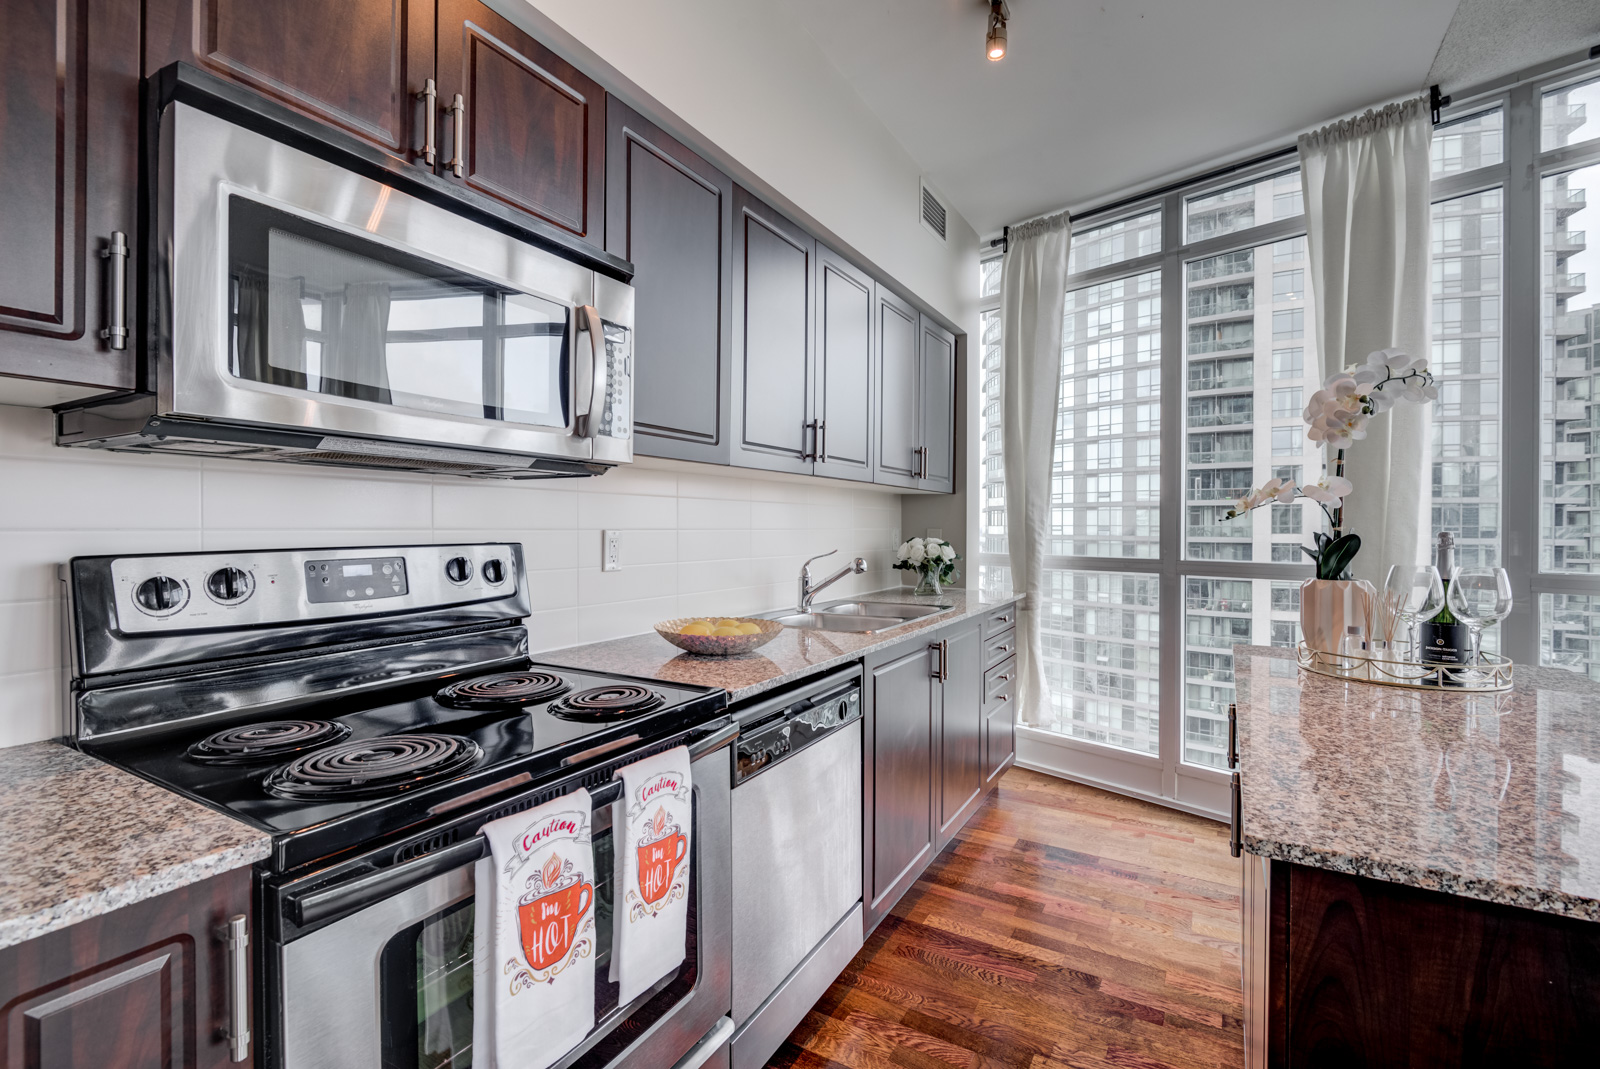 Linear kitchen and stainless oven, dishwasher and microwave at 215 Fort York Blvd Unit 2310.